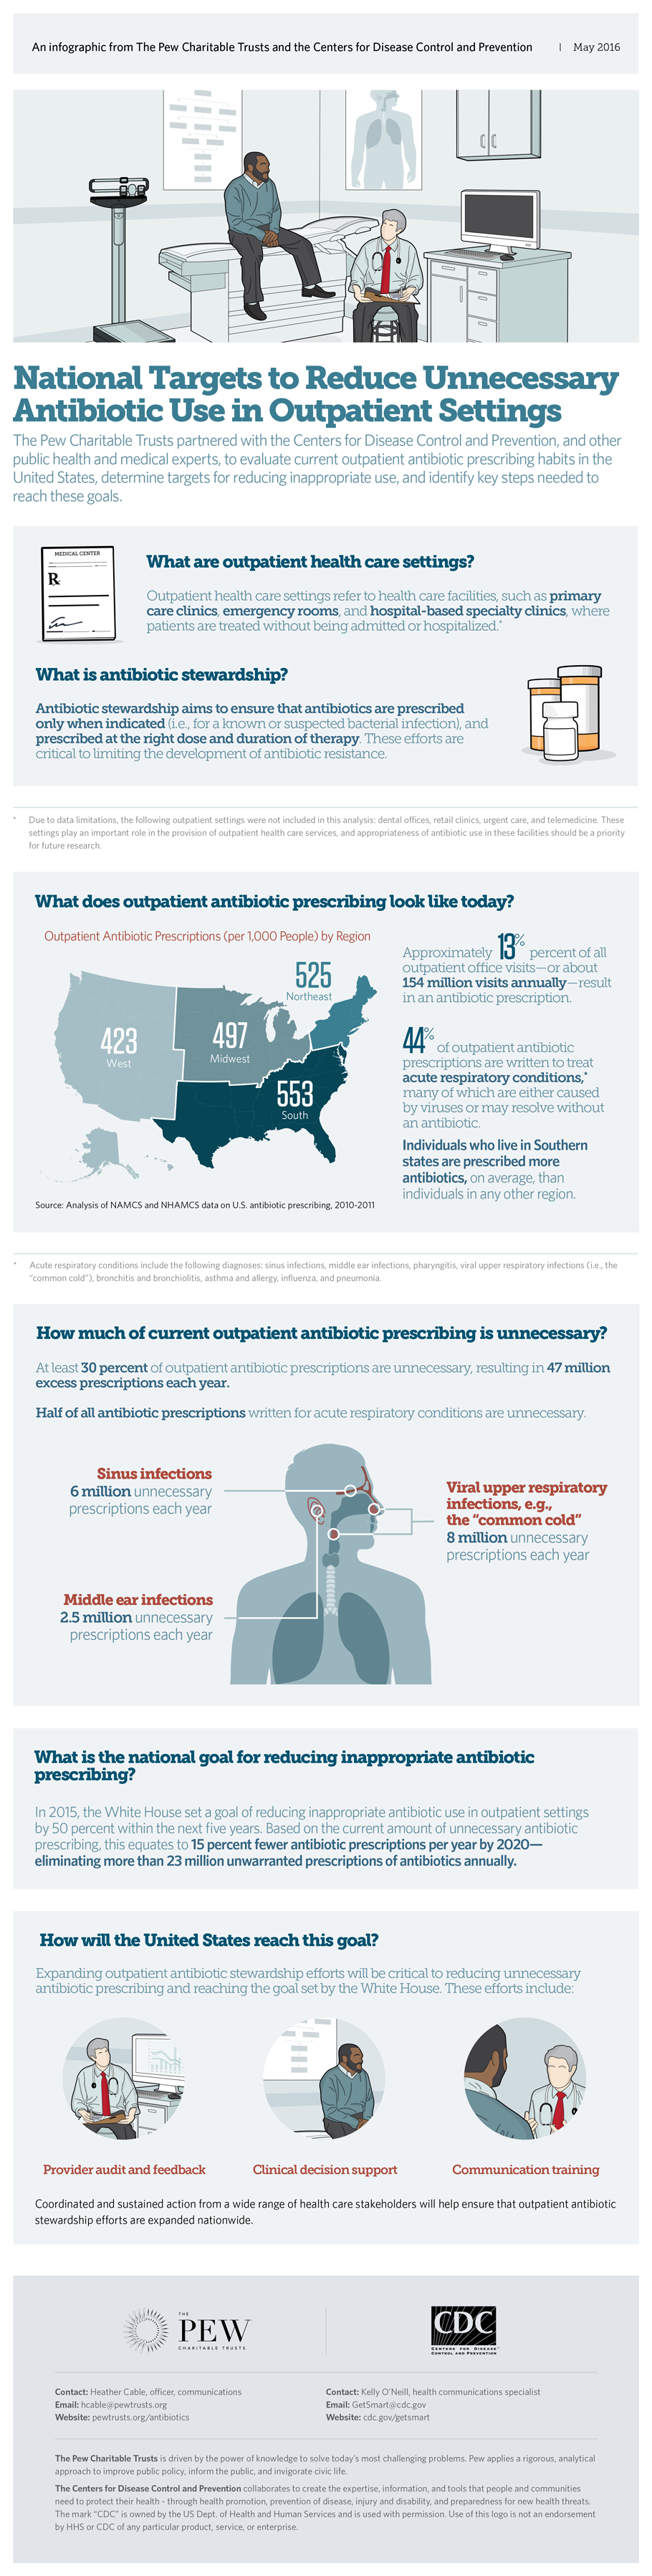 National targets to reduce unnecessary antibiotic use in outpatient settings: Infographic